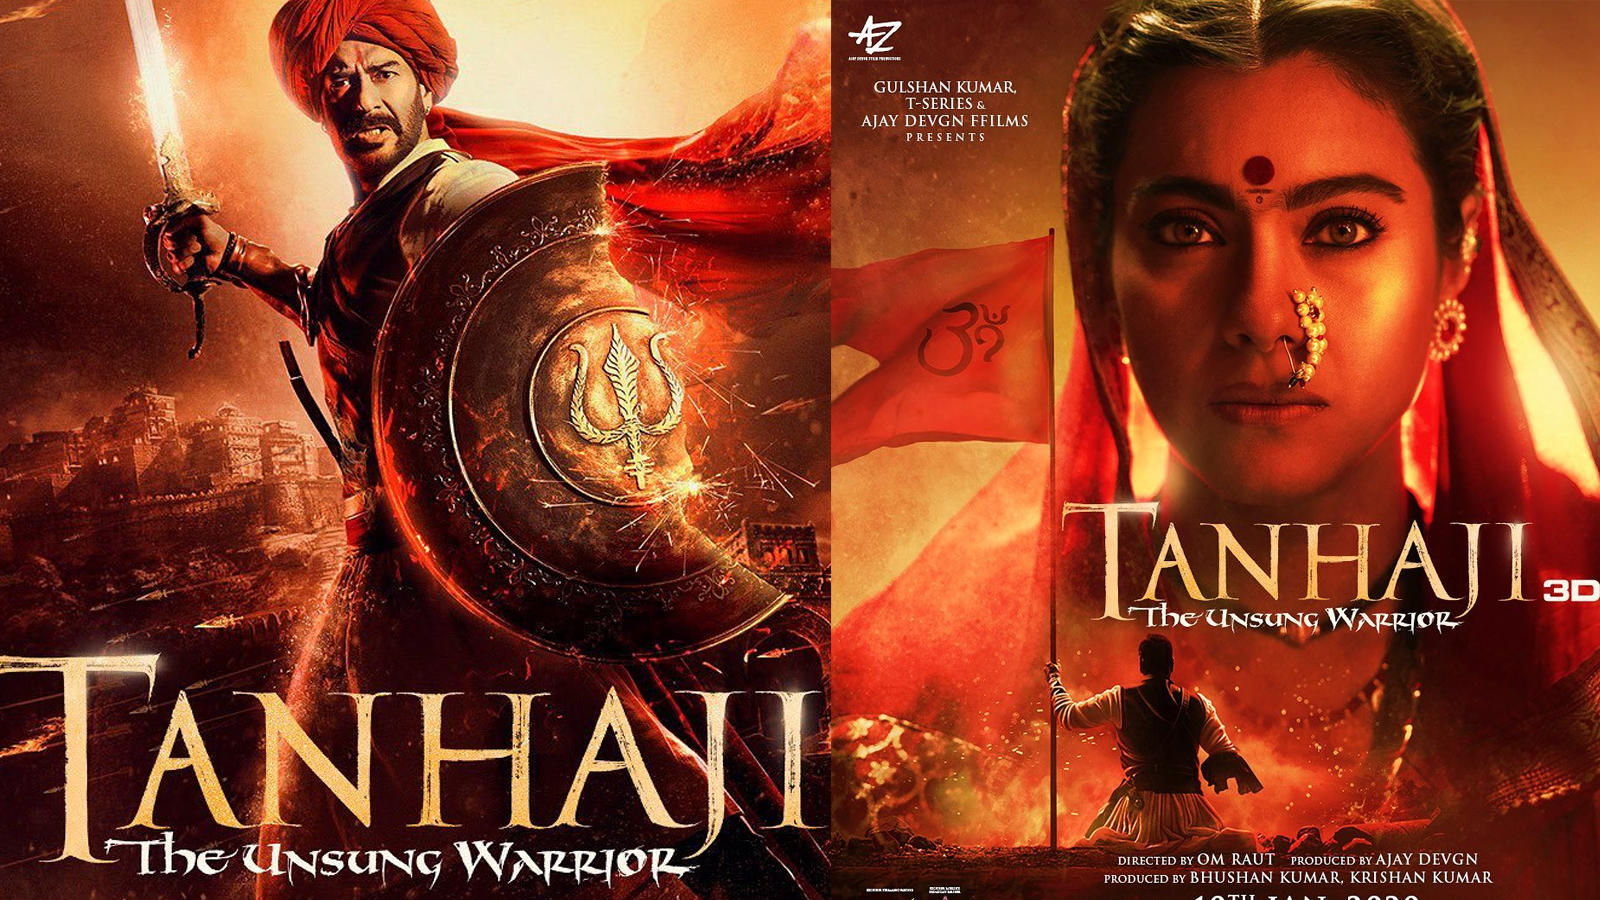 ajay-devgn-organises-special-trailer-preview-of-tanhaji-the-unsung-warrior